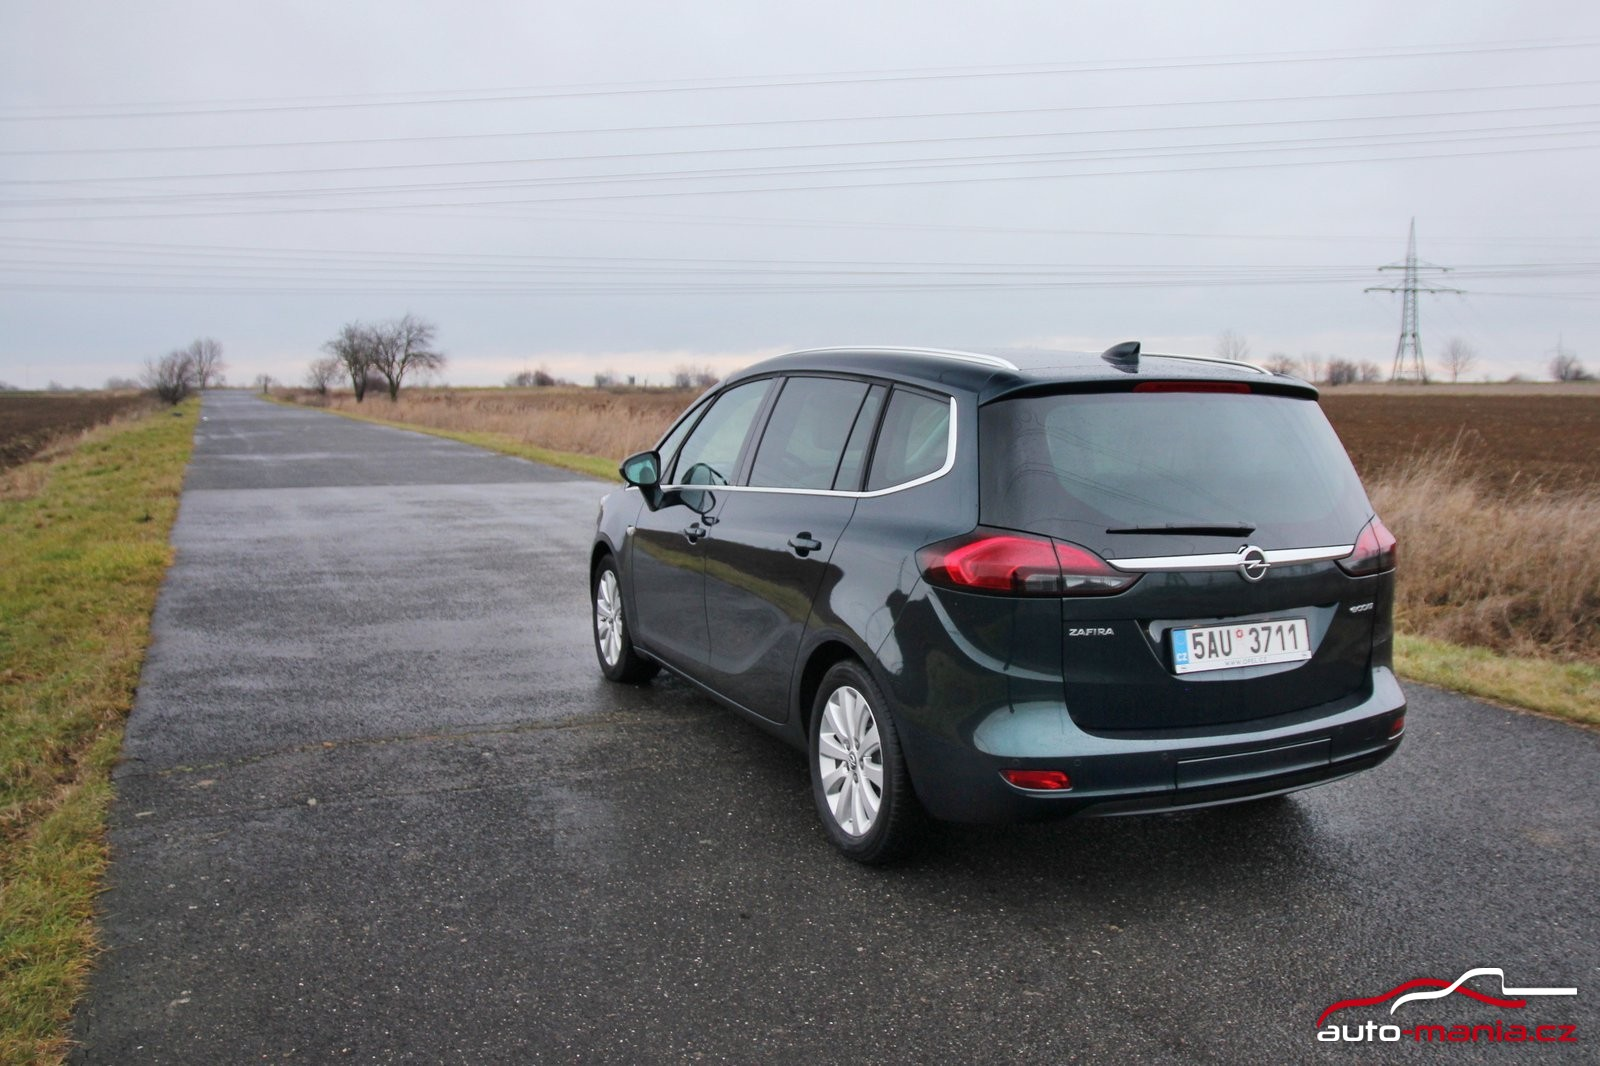 test opel zafira 2 0 cdti 125 kw. Black Bedroom Furniture Sets. Home Design Ideas